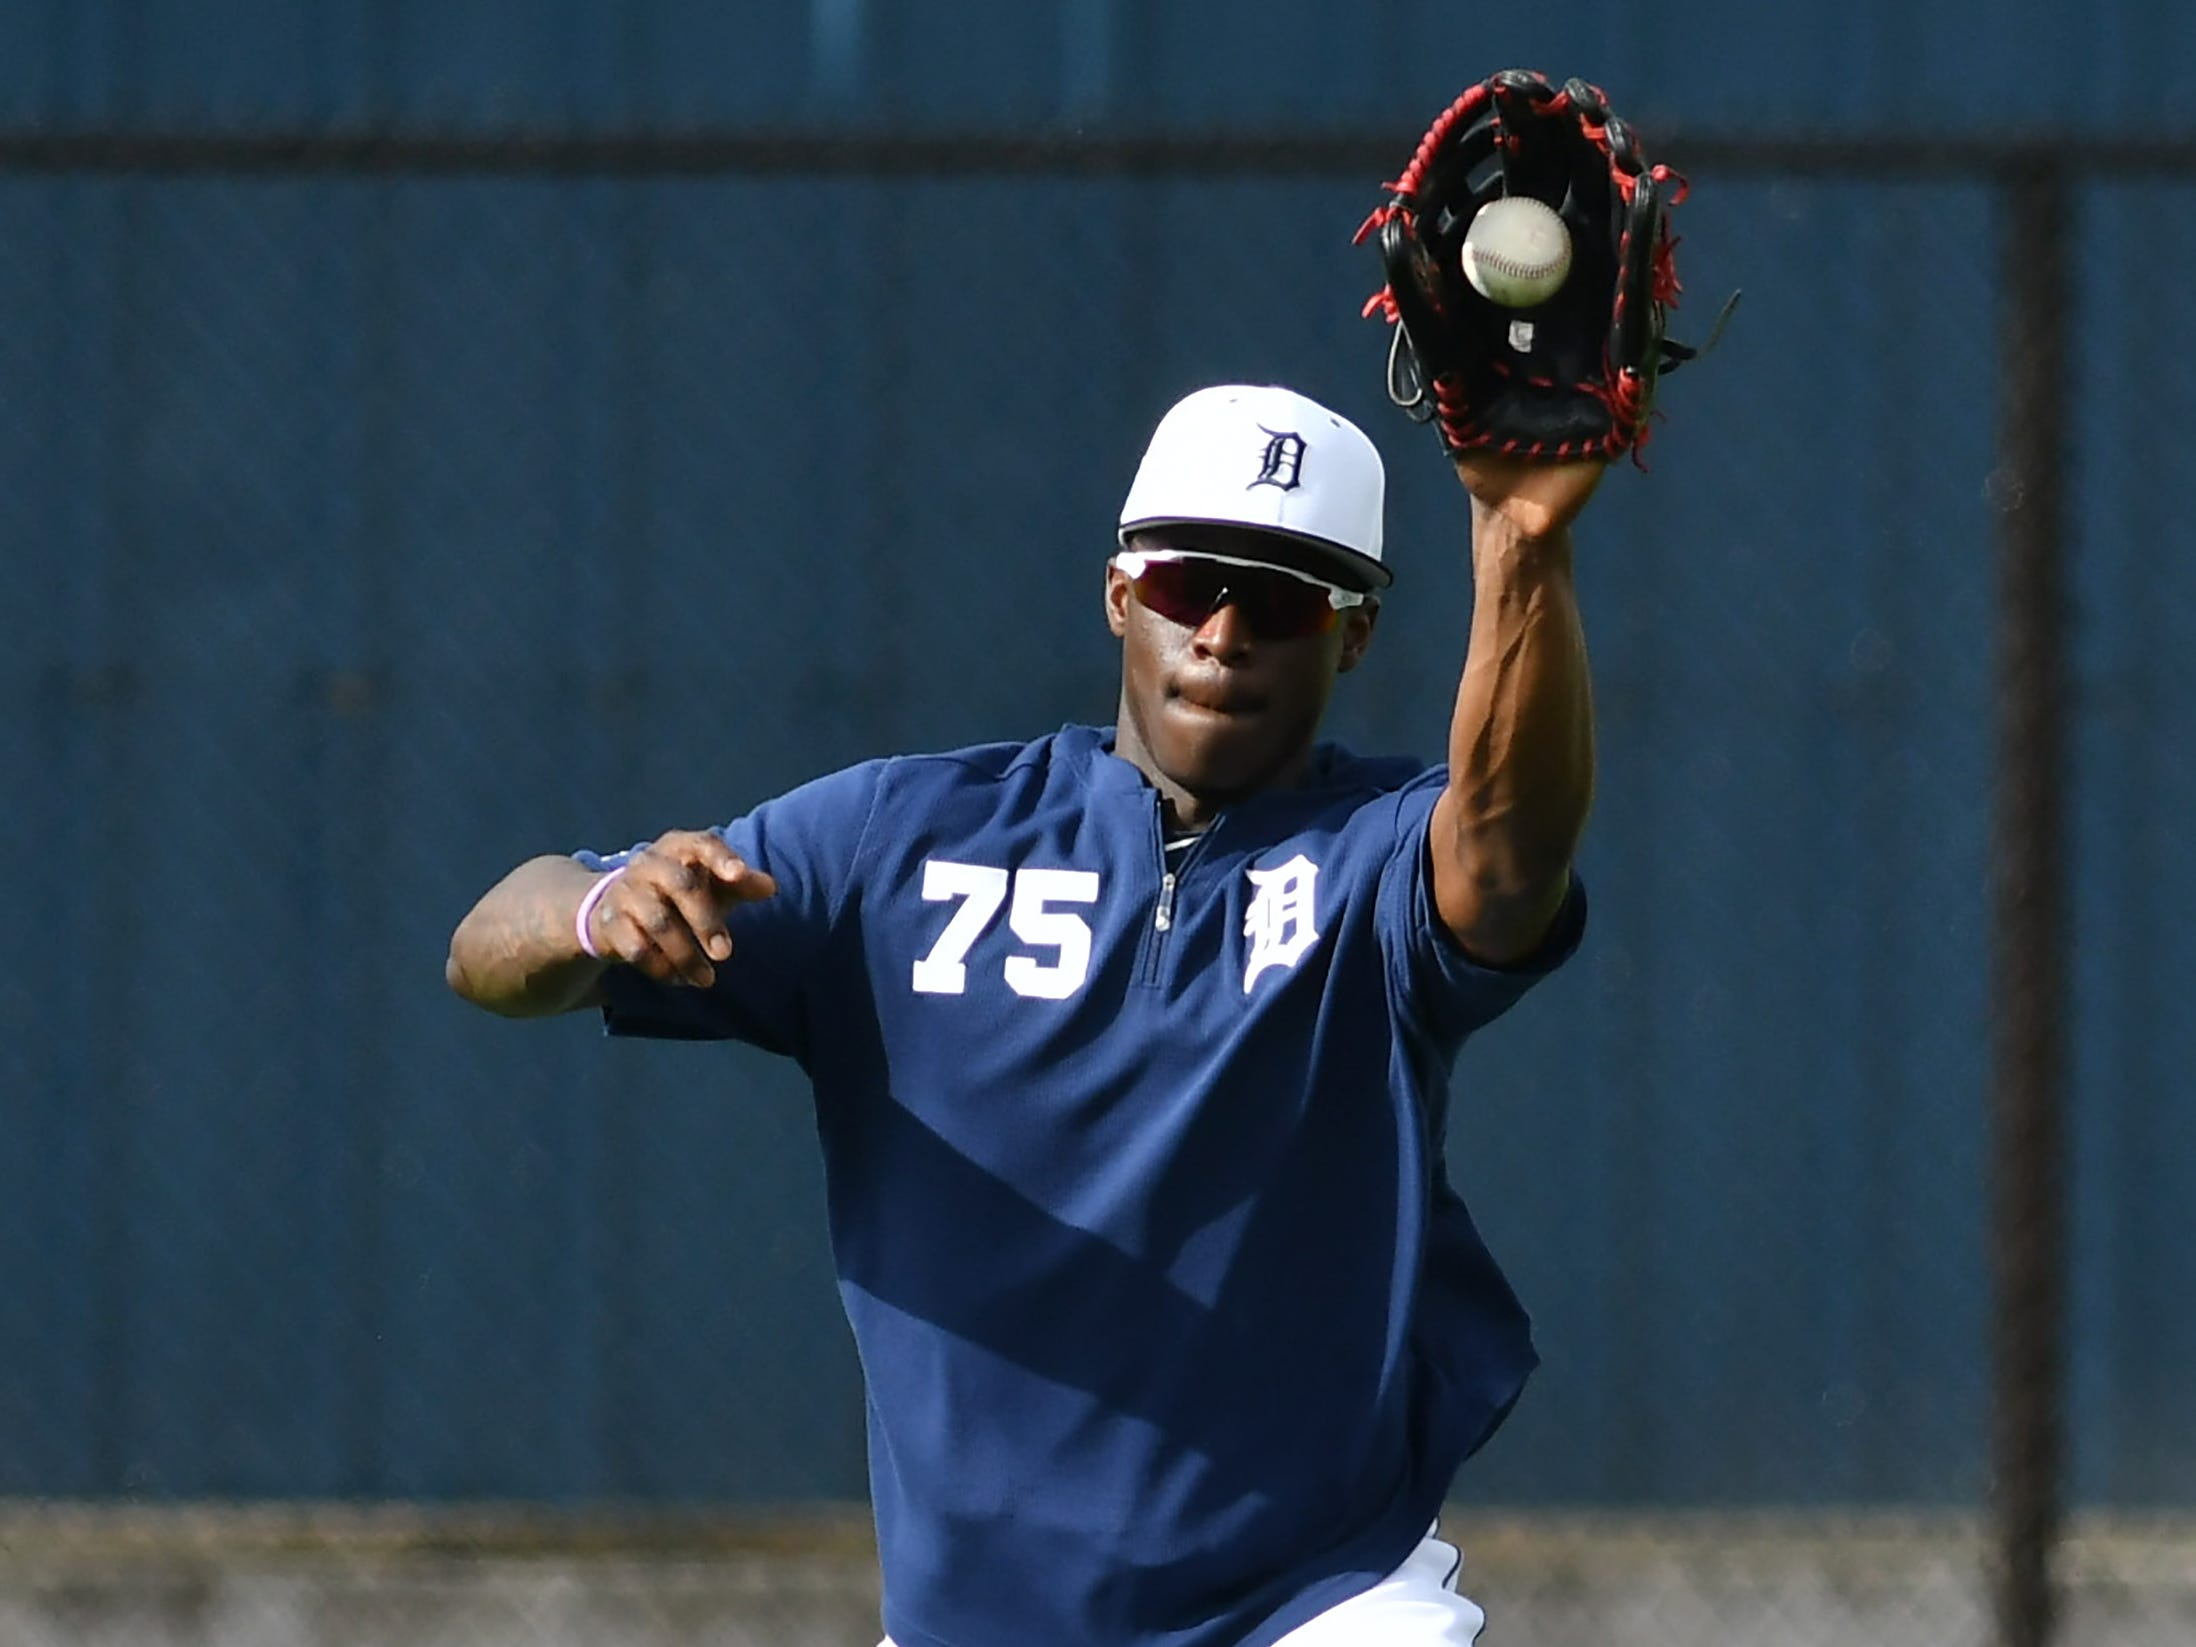 Tigers non-roster invitee Daz Cameron fields the ball on one hop during drills.